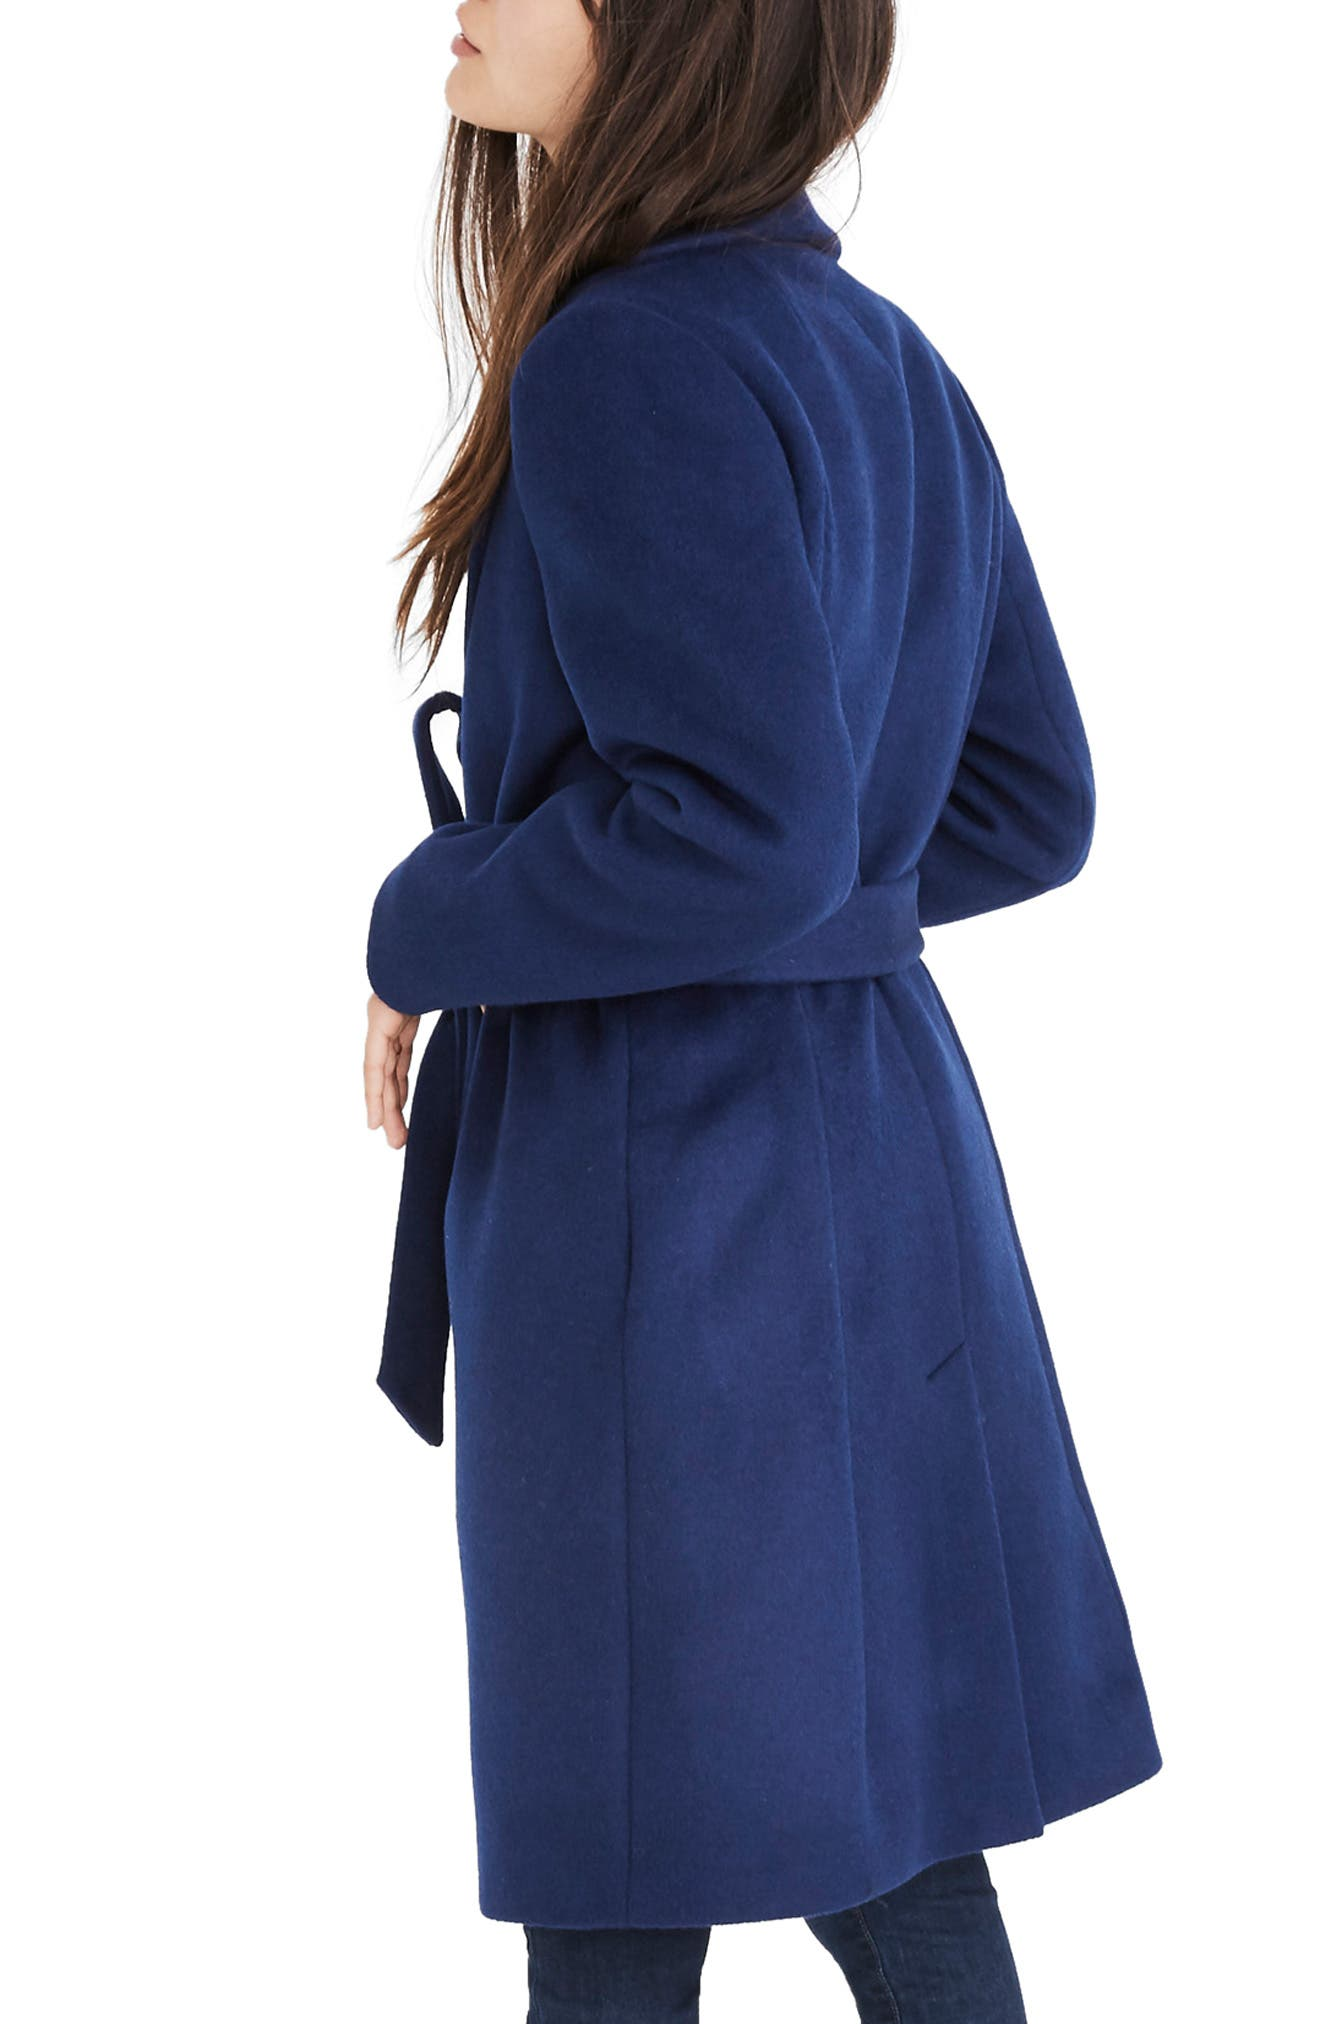 Shawl Collar Wrap Coat,                             Alternate thumbnail 2, color,                             NIGHT SKY